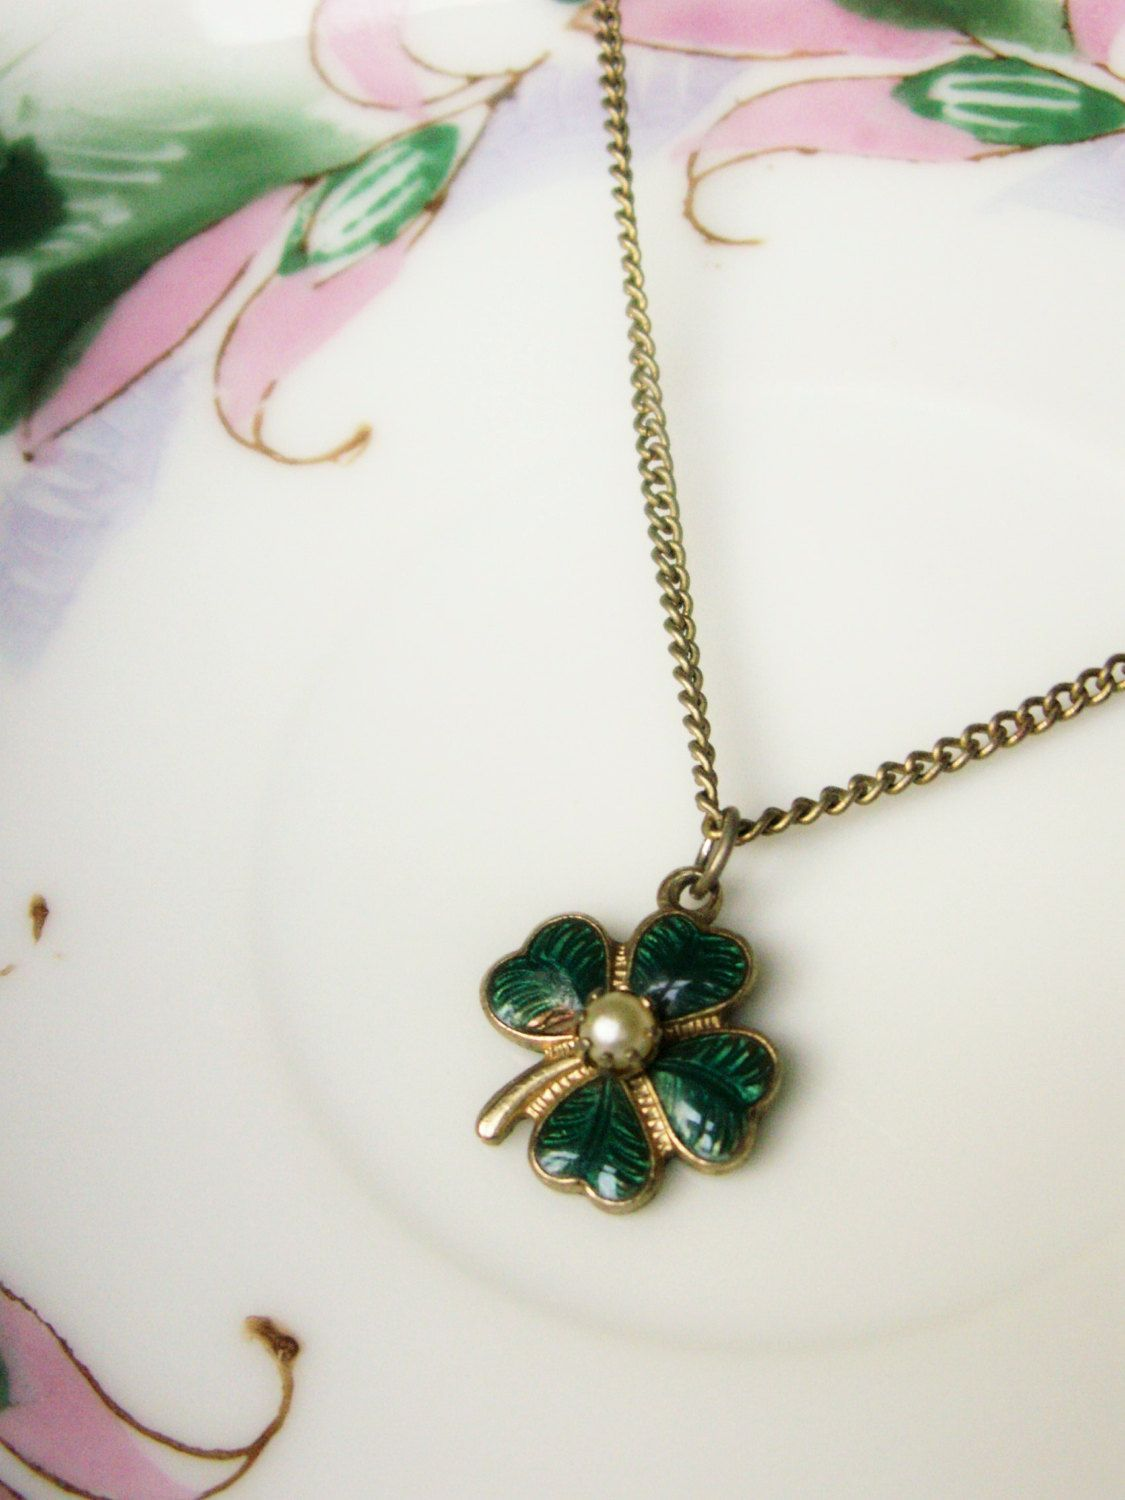 Green lucky shamrock necklace four leaf clover charm emerald green - Vintage Guilloche Enamel Pearl Pendant Necklace Green Lucky Shamrock 4 Leaf Clover Jewelry St Patricks Day 1950s